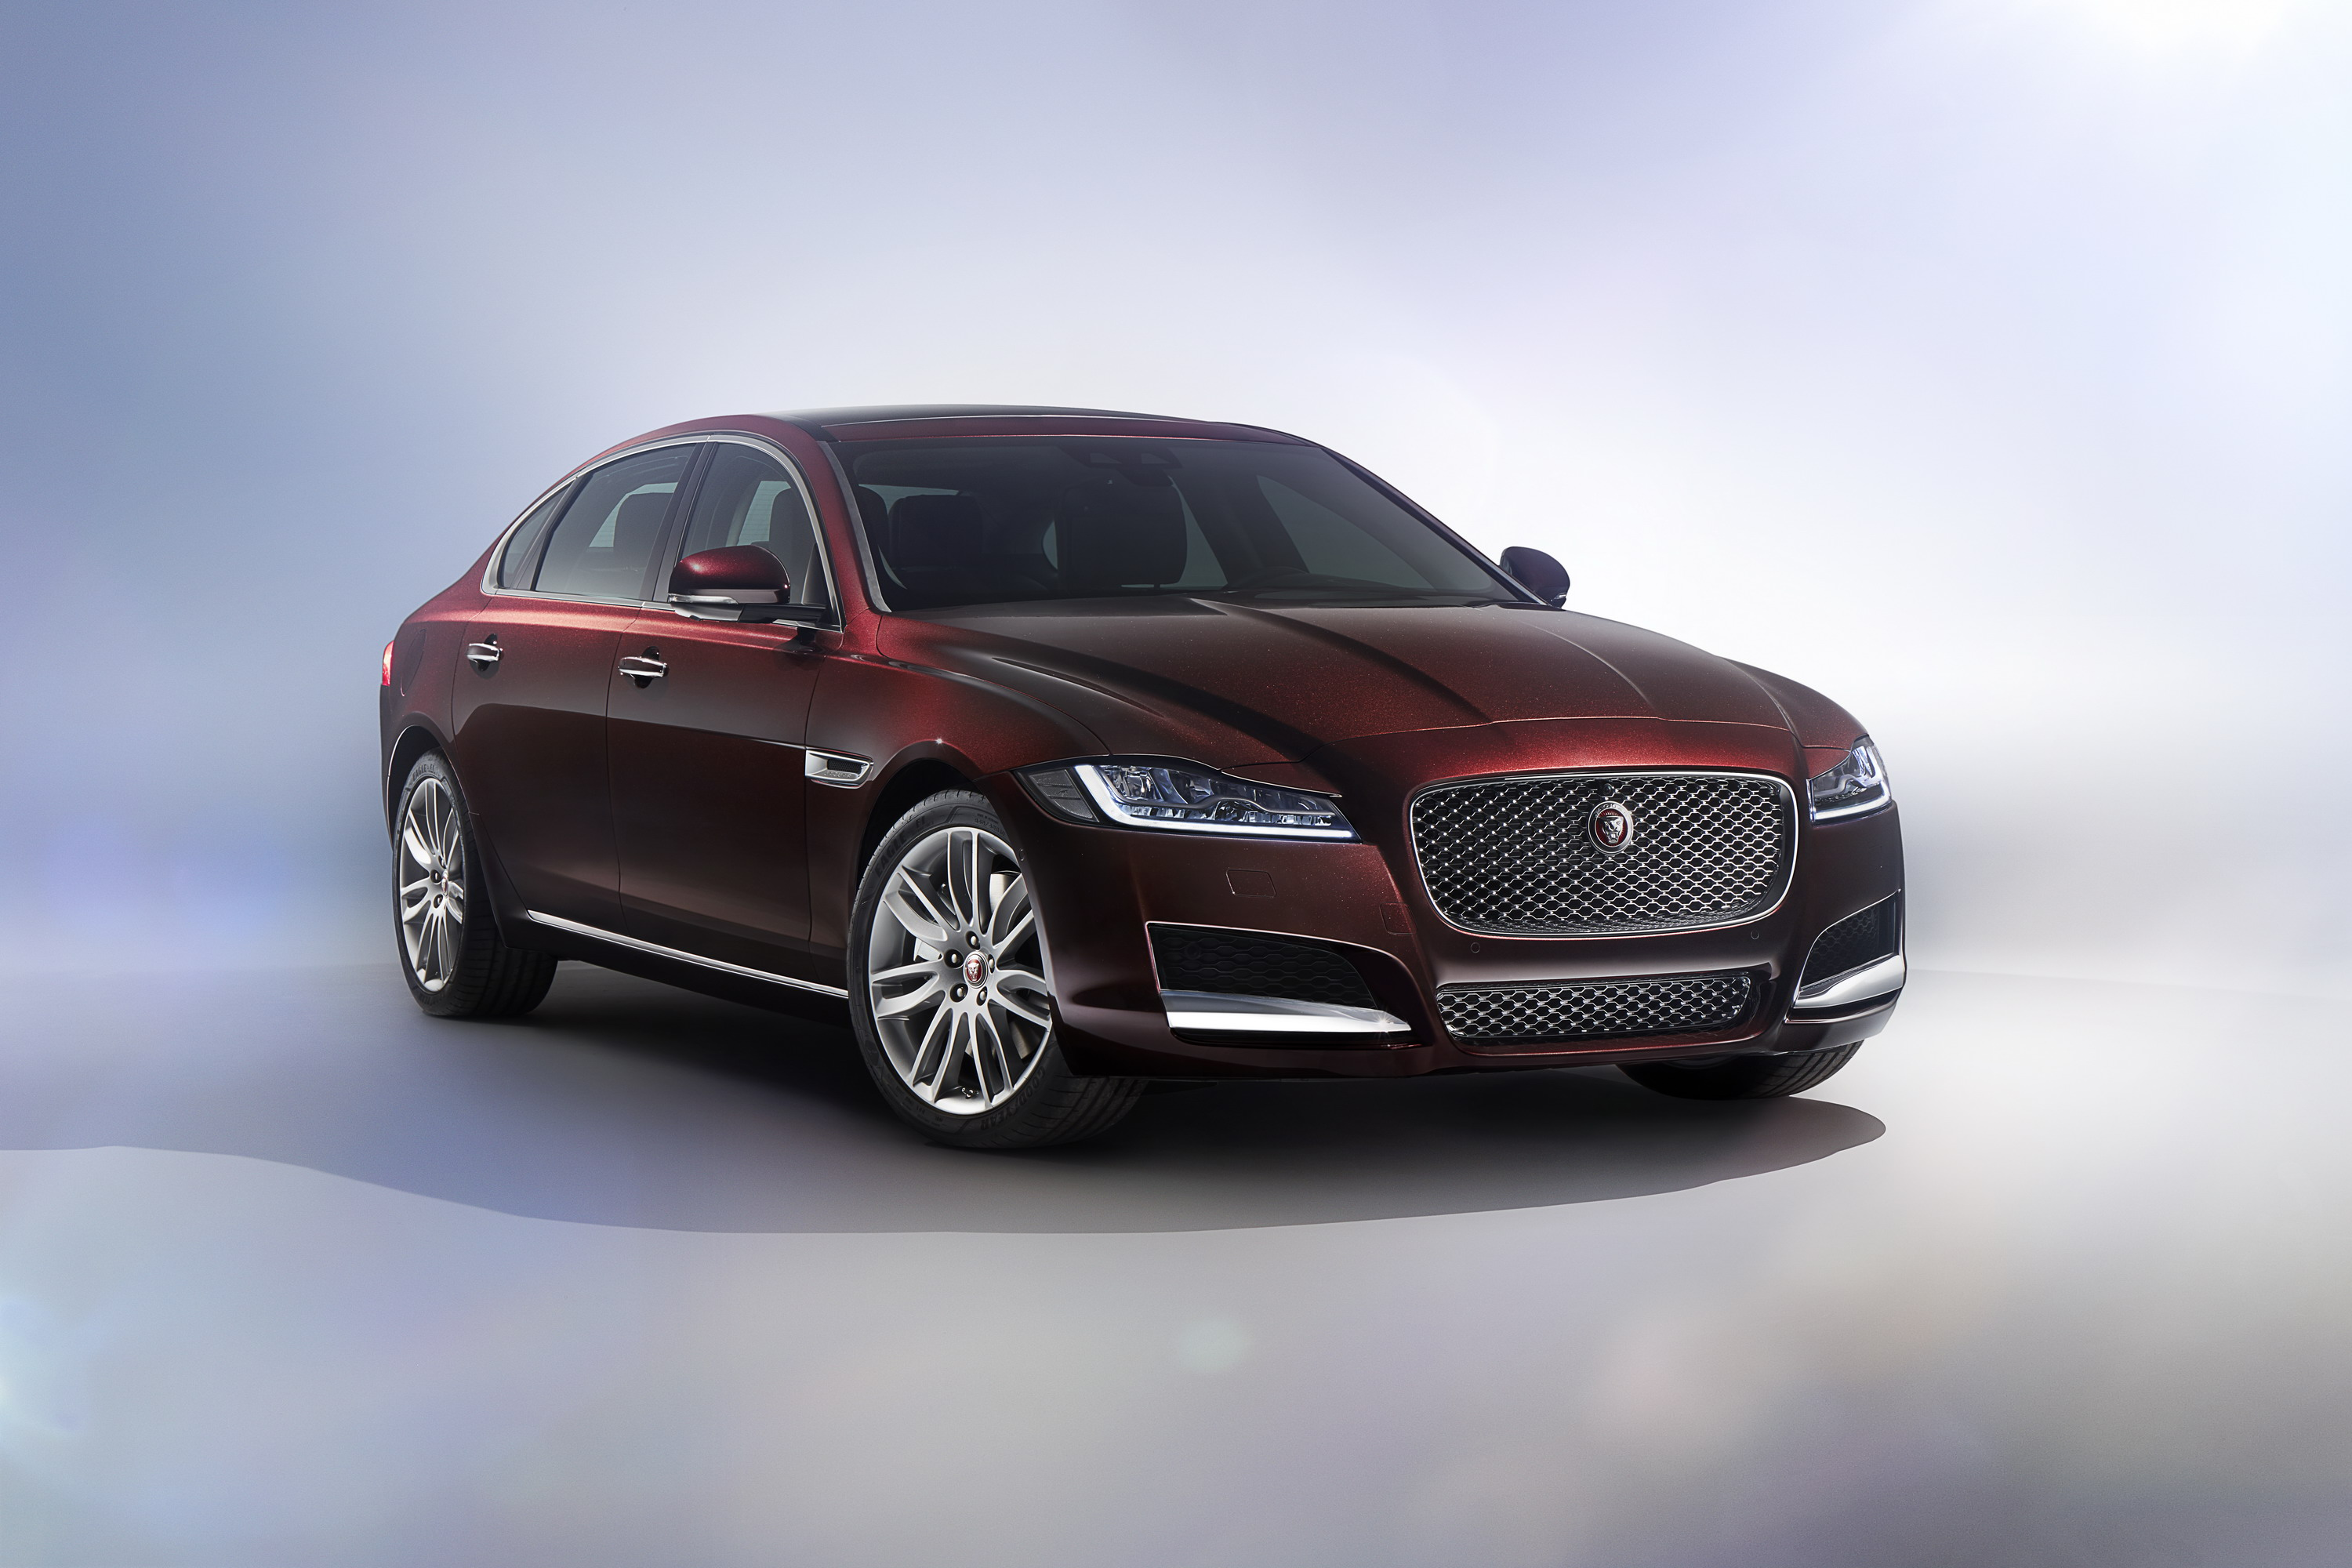 new amas jaguar out returning is car stage gallery his first horan jaguars cars miranda photo to niall solo kerr for the check